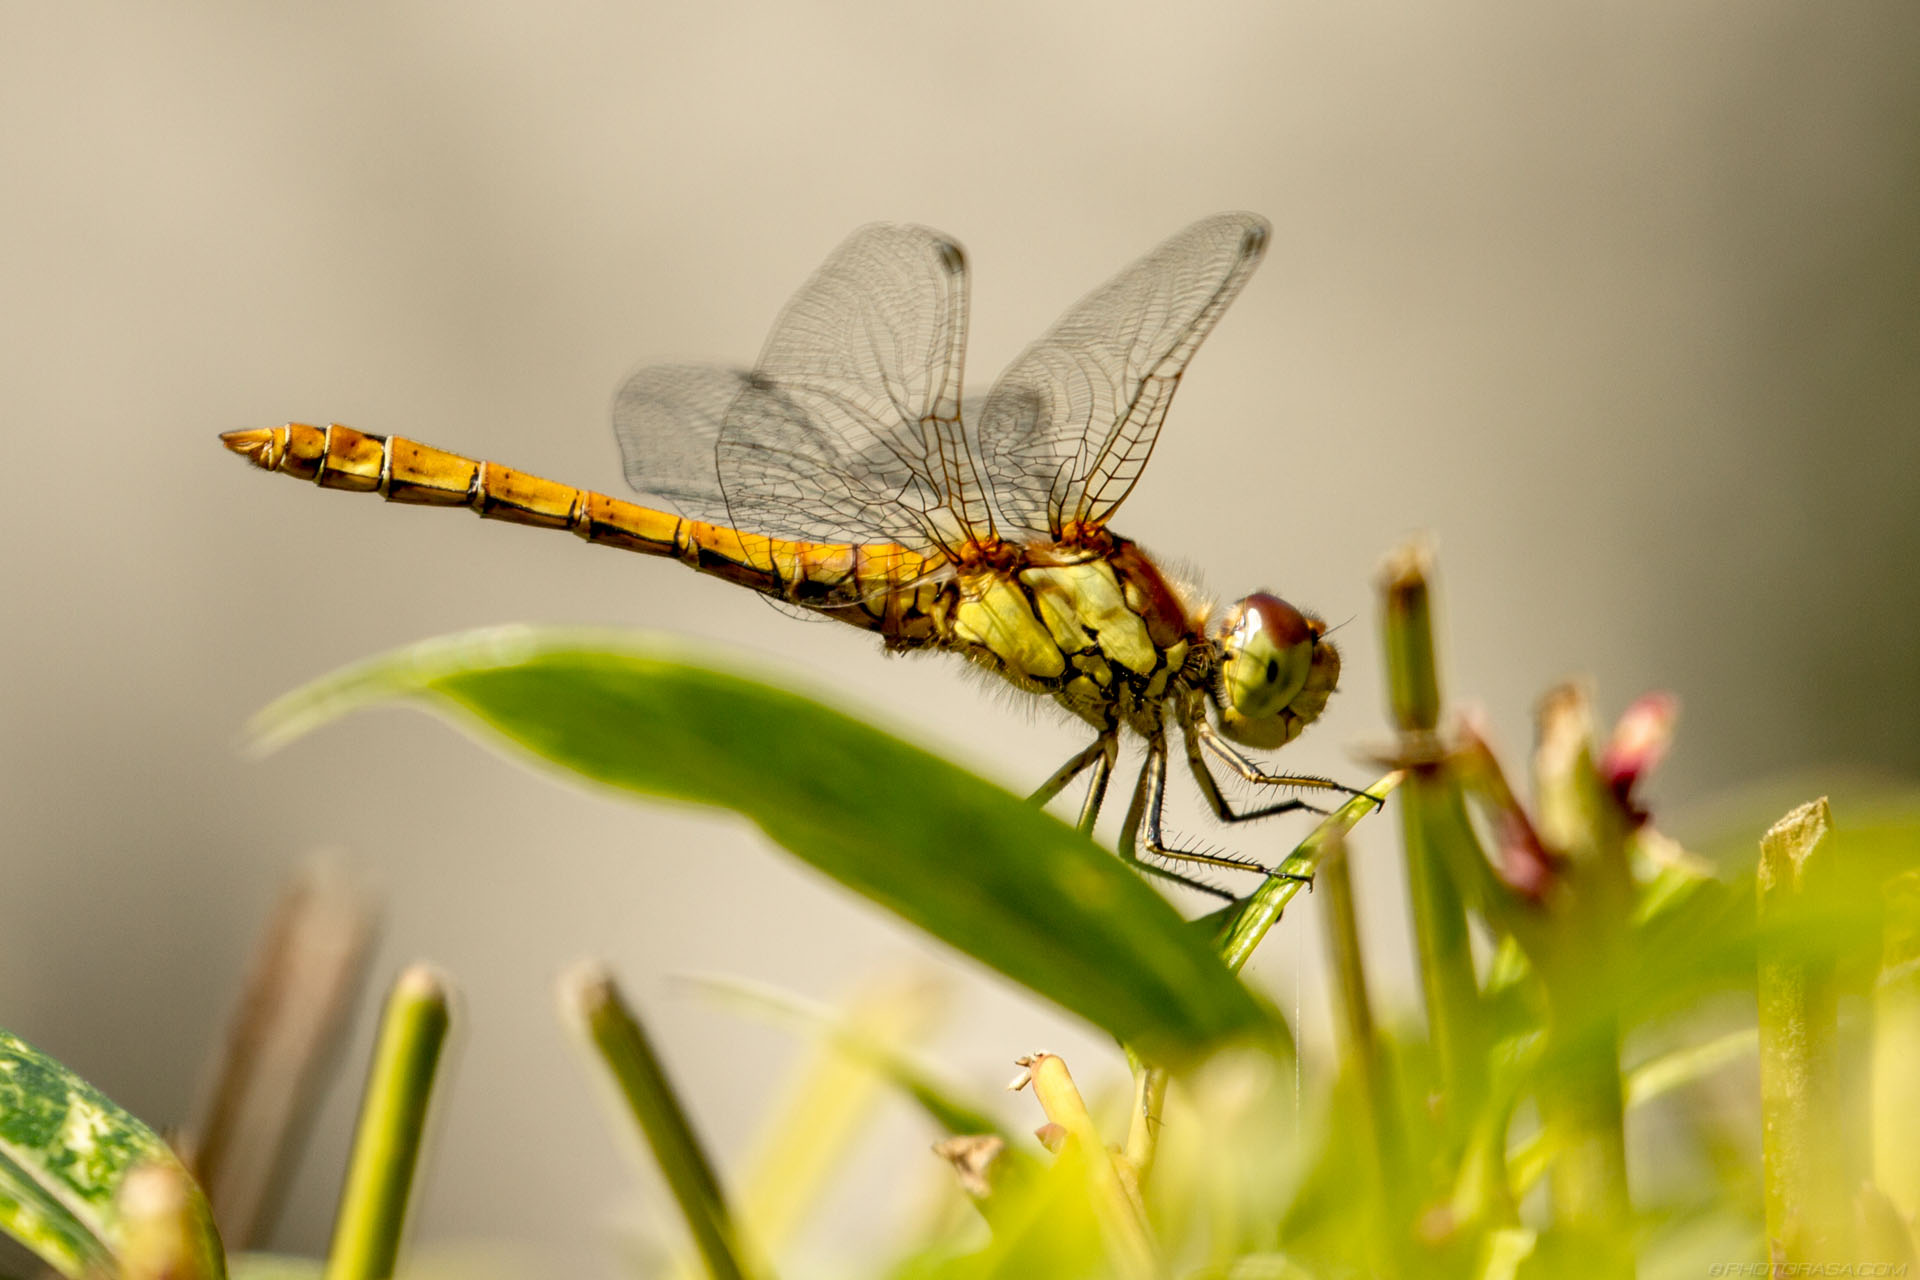 http://photorasa.com/dragonflies/yellow-dragonfly-in-the-undergrowth/